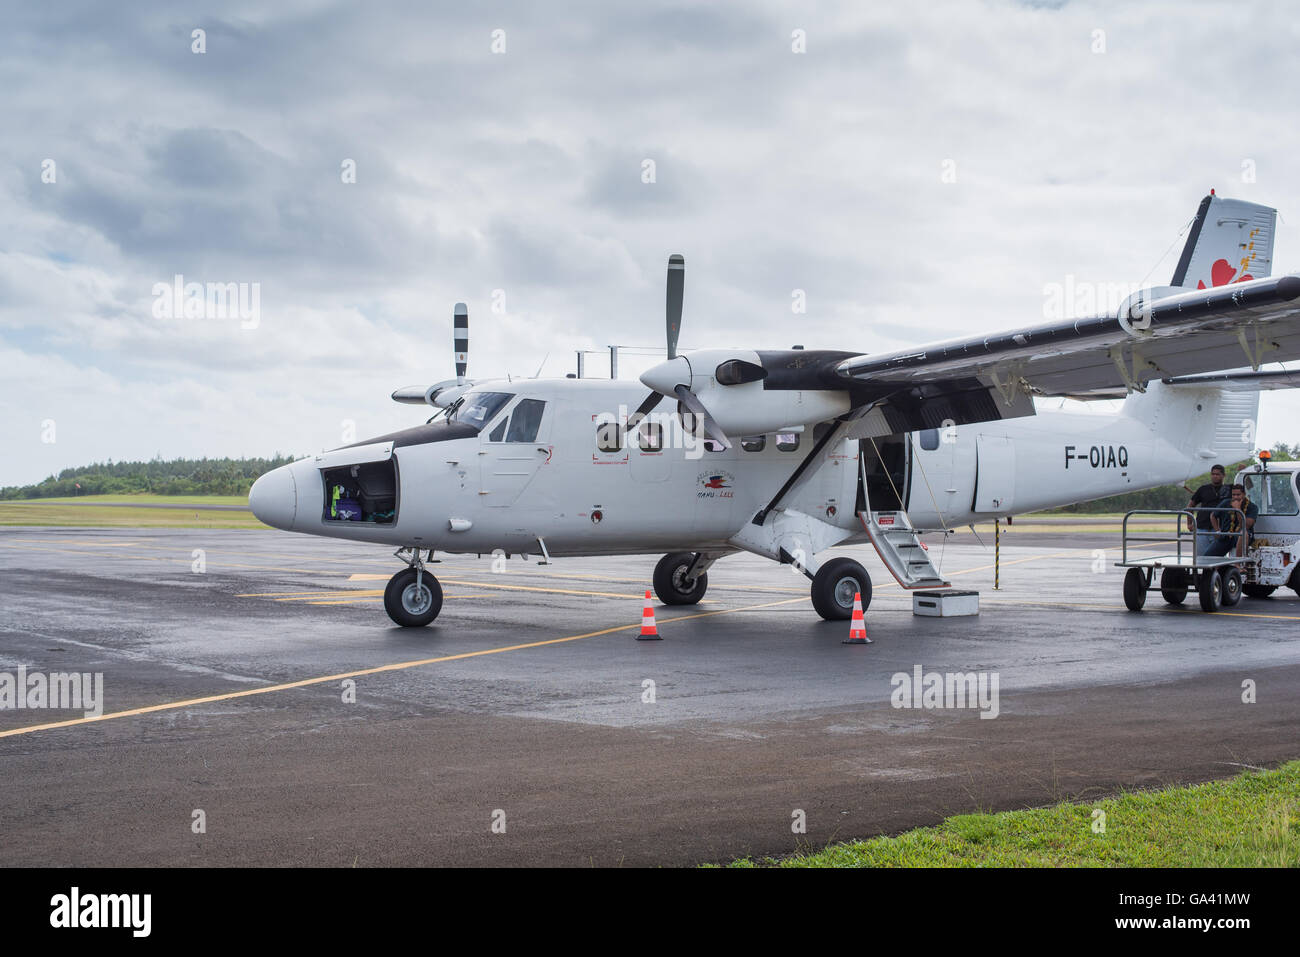 Twin Otter of AirCalin at the Futuna airport waiting for passenger - Stock Image